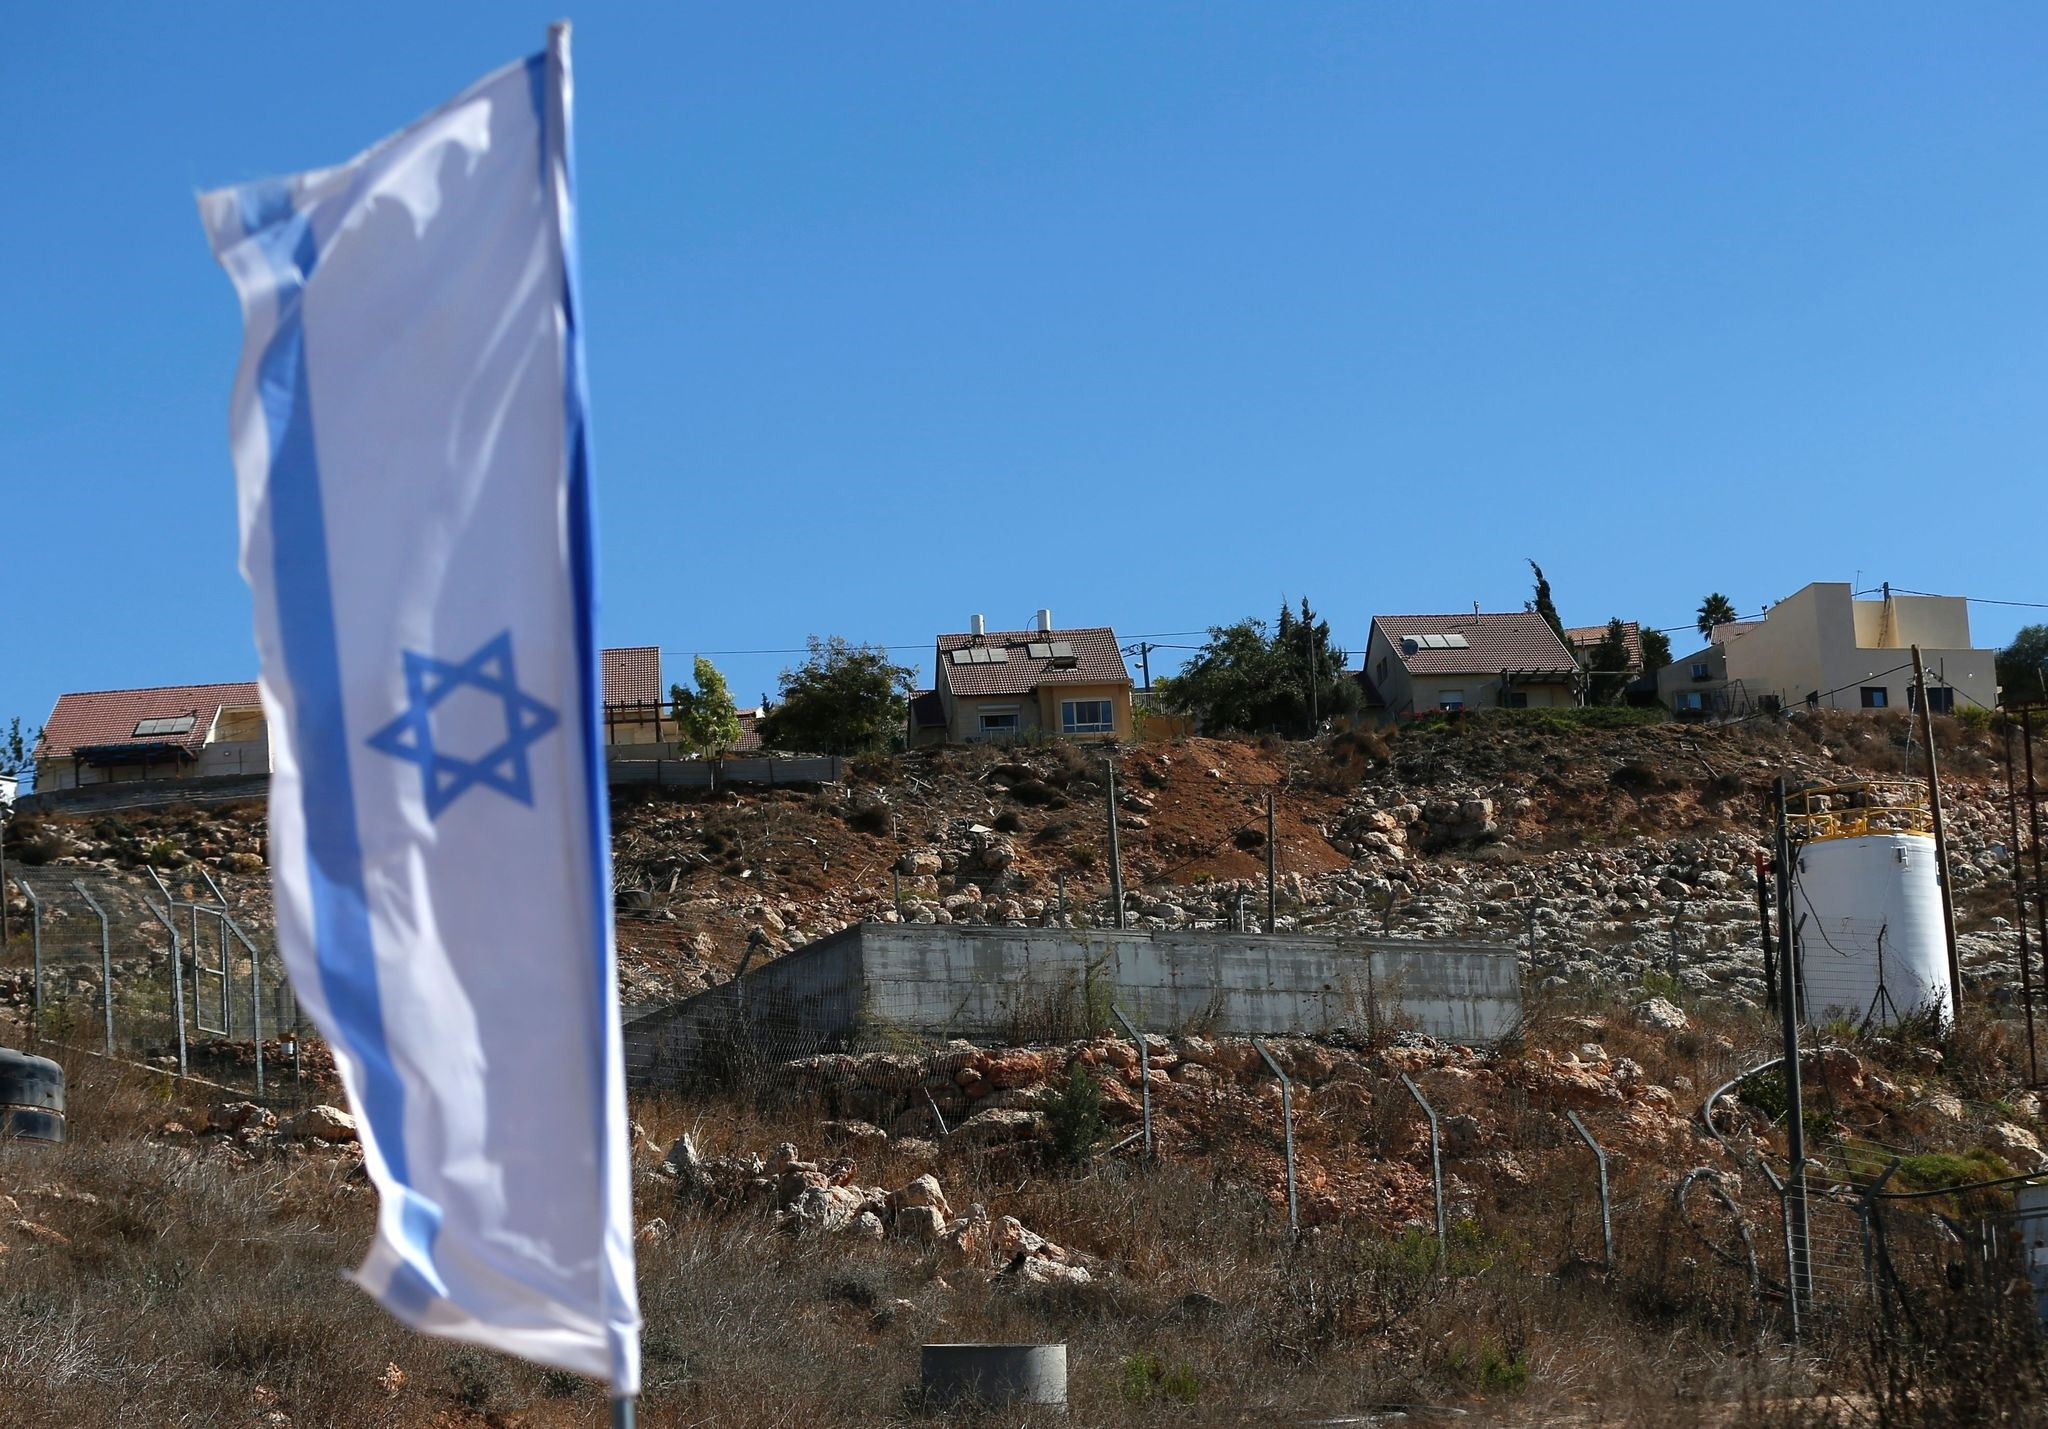 A picture taken on October 2, 2016 shows an Israeli national flag flying next to an Israeli building site of new housing units in the Jewish settlement of Shilo in the occupied Palestinian West Bank. (AFP Photo)